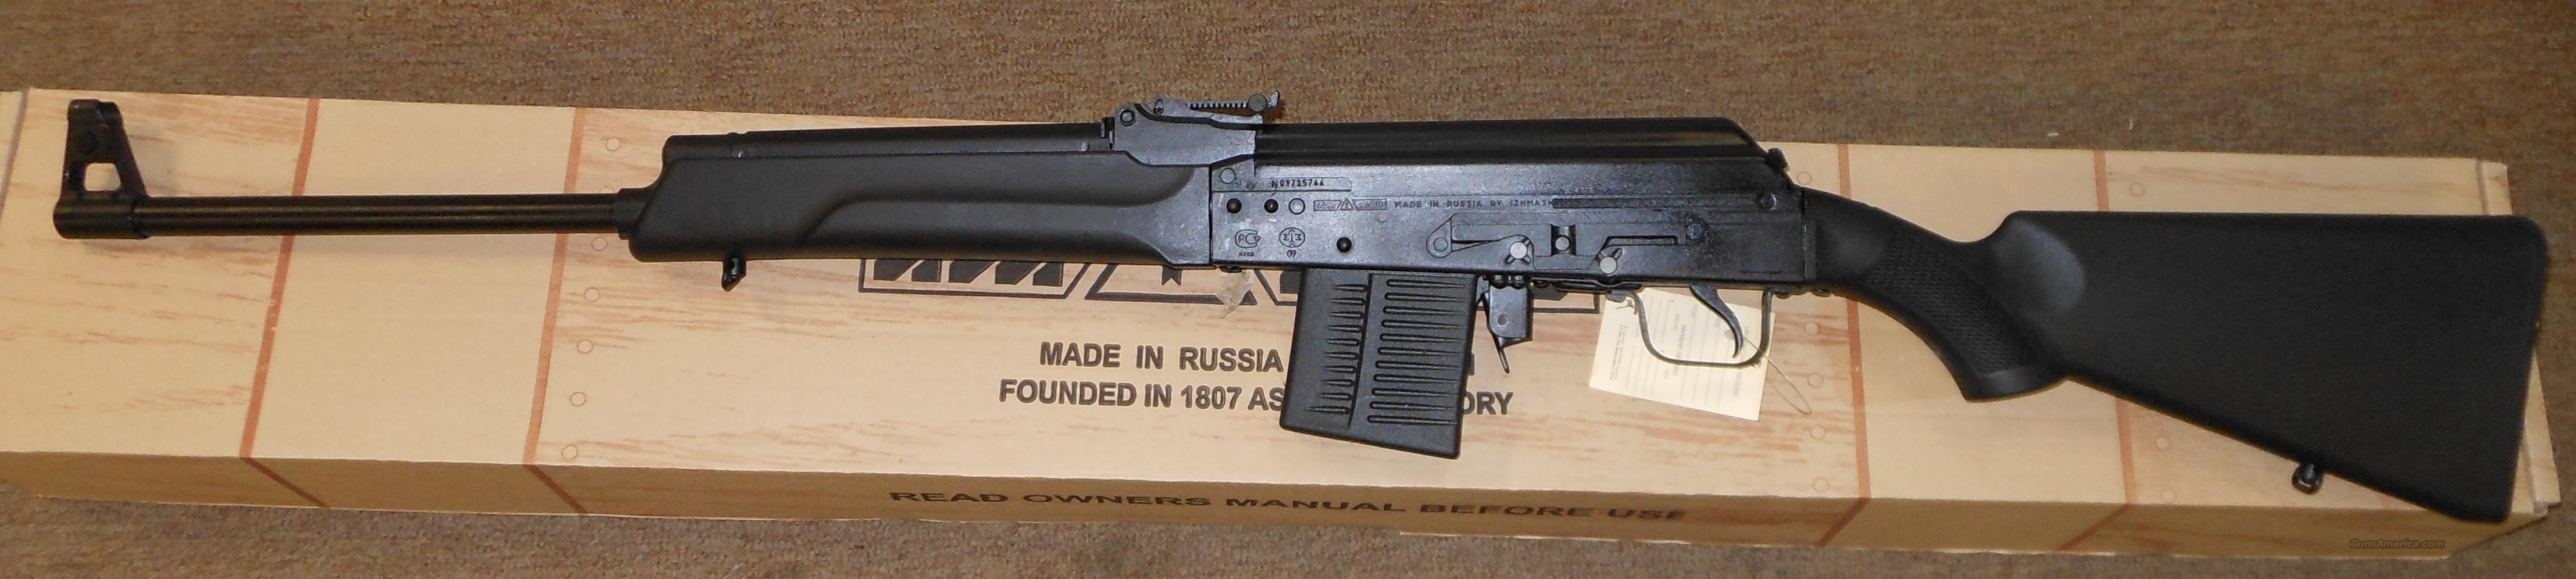 "KVAR SAIGA IZ-139 308 WIN (7.62X51 NATO) KALASHNIKOV RIFLE W/ 22"" BARREL  Guns > Rifles > Saiga Rifles"